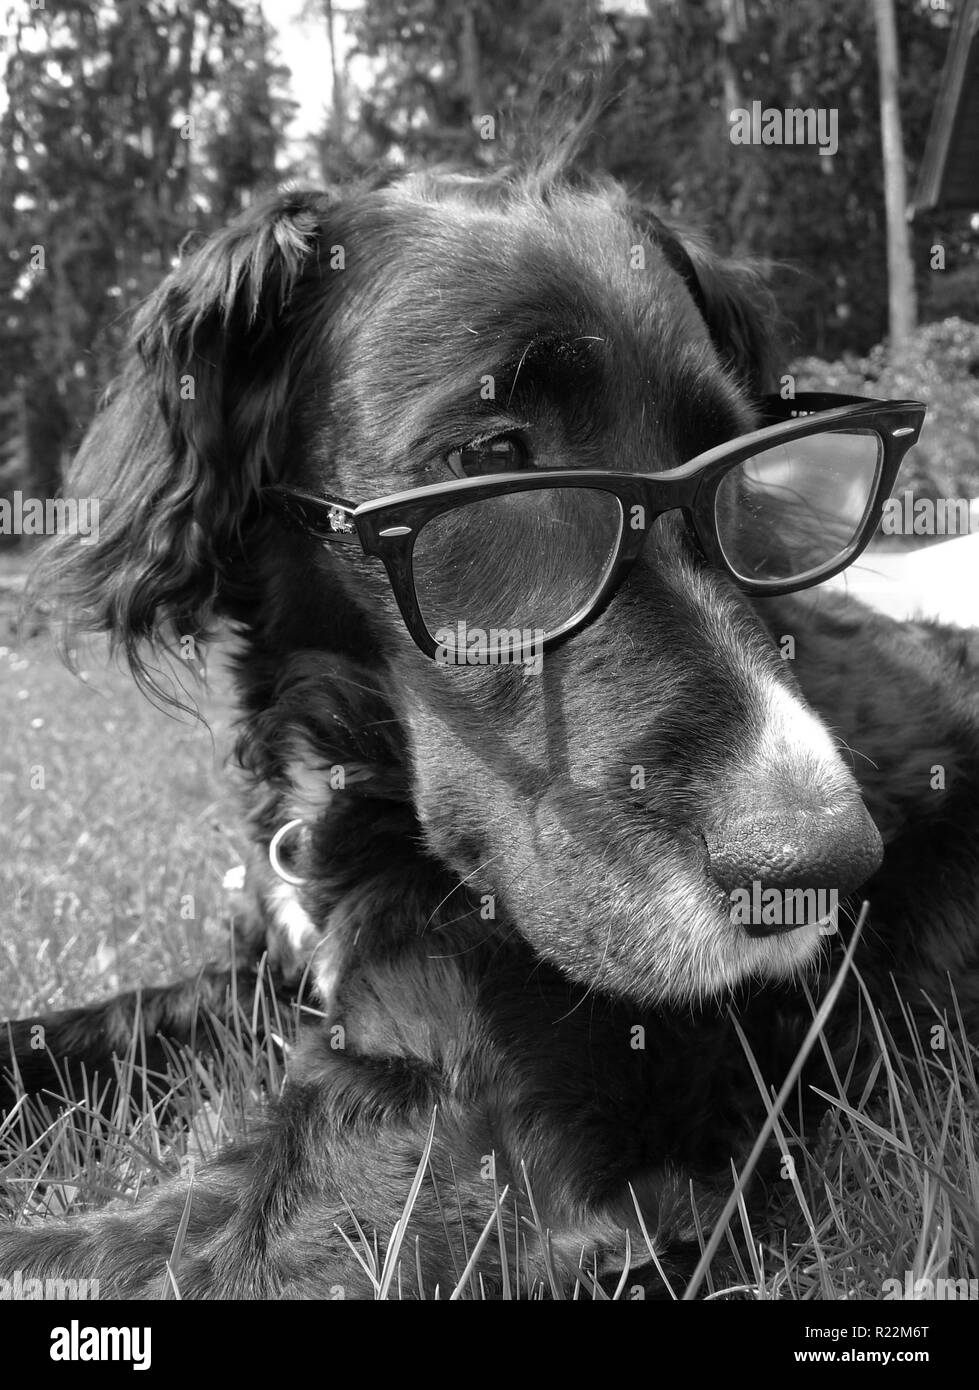 THE INTELLECTUAL DOG - Stock Image